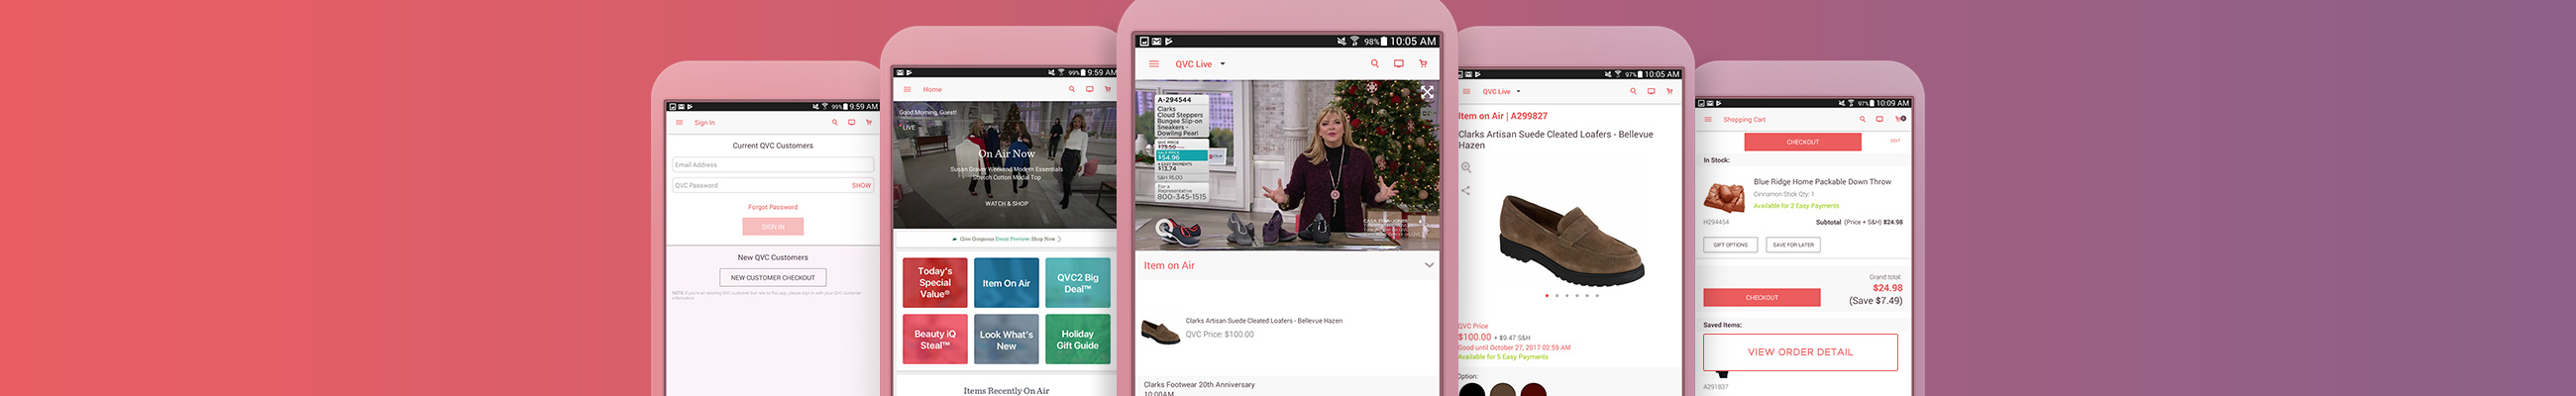 QVC for Android